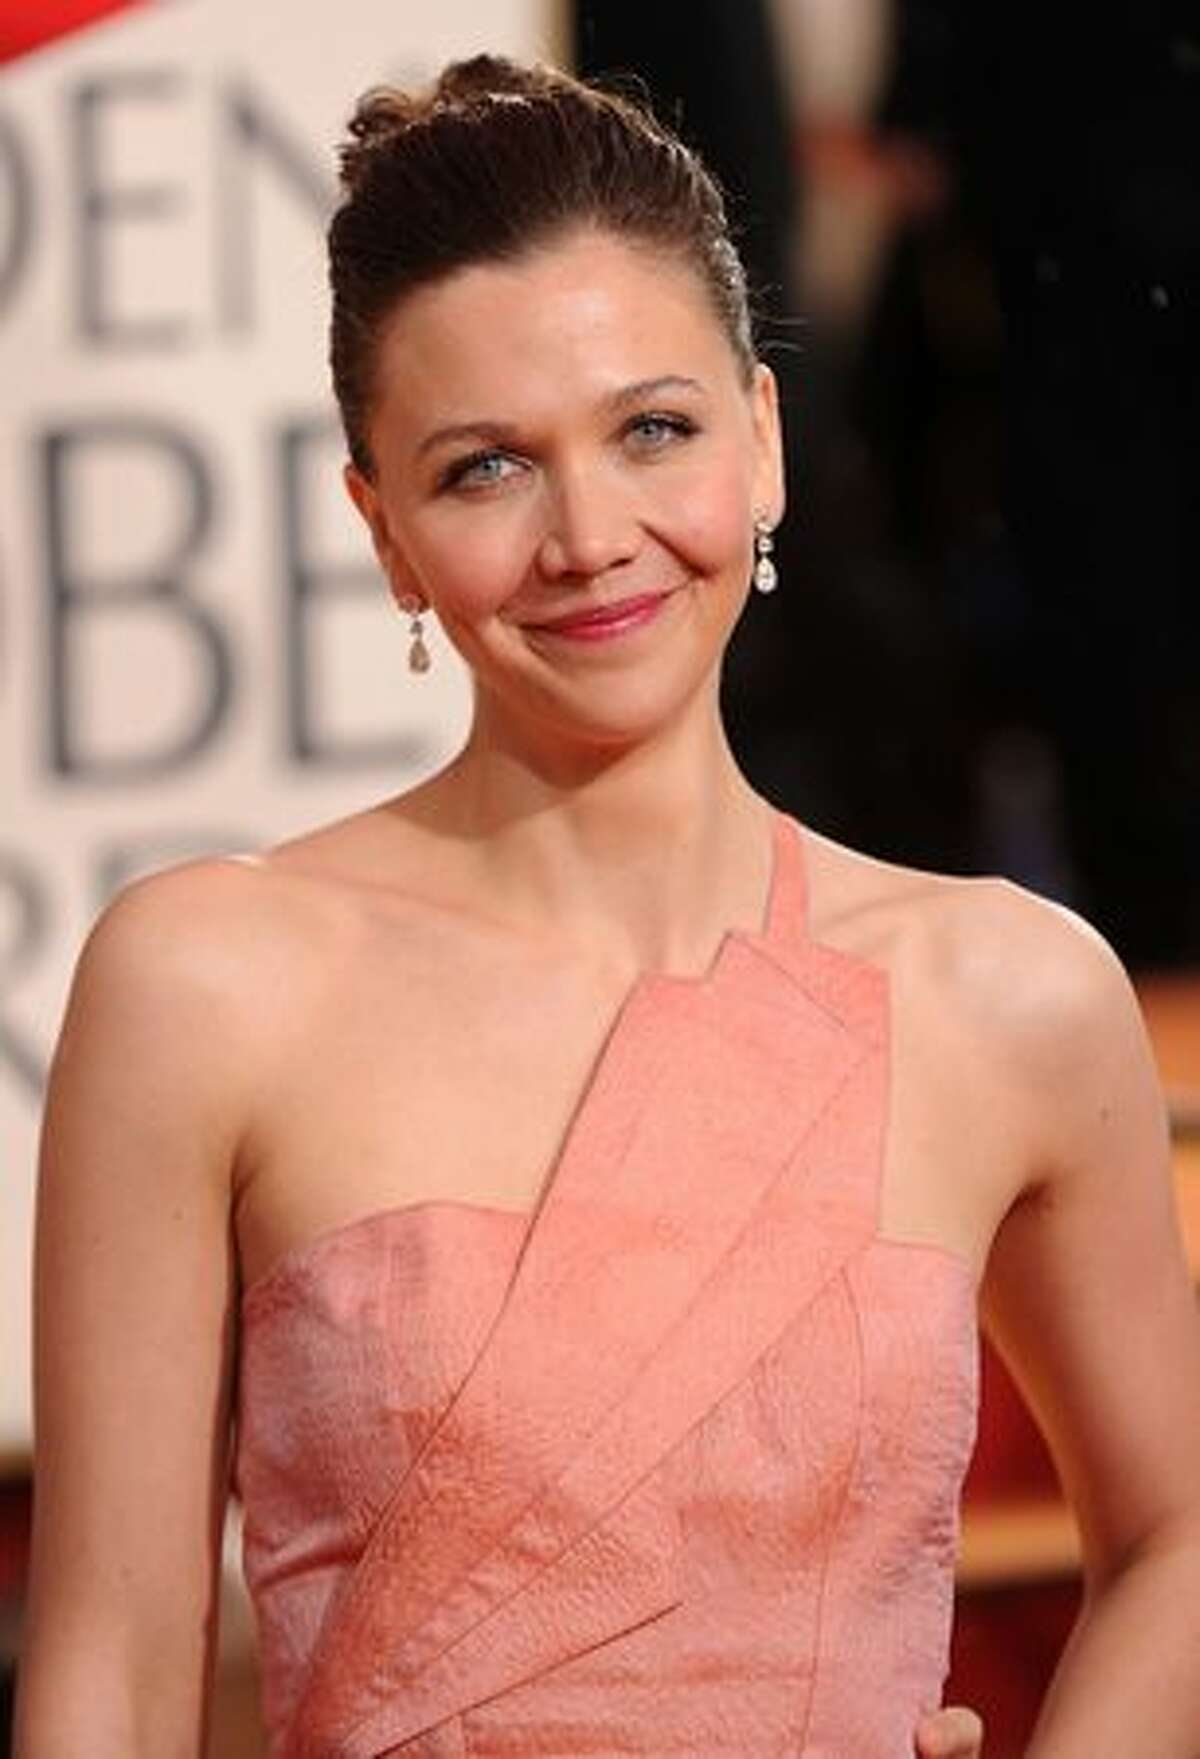 Actress Maggie Gyllenhaal arrives at the 67th Annual Golden Globe Awards held at The Beverly Hilton Hotel in Beverly Hills, California.